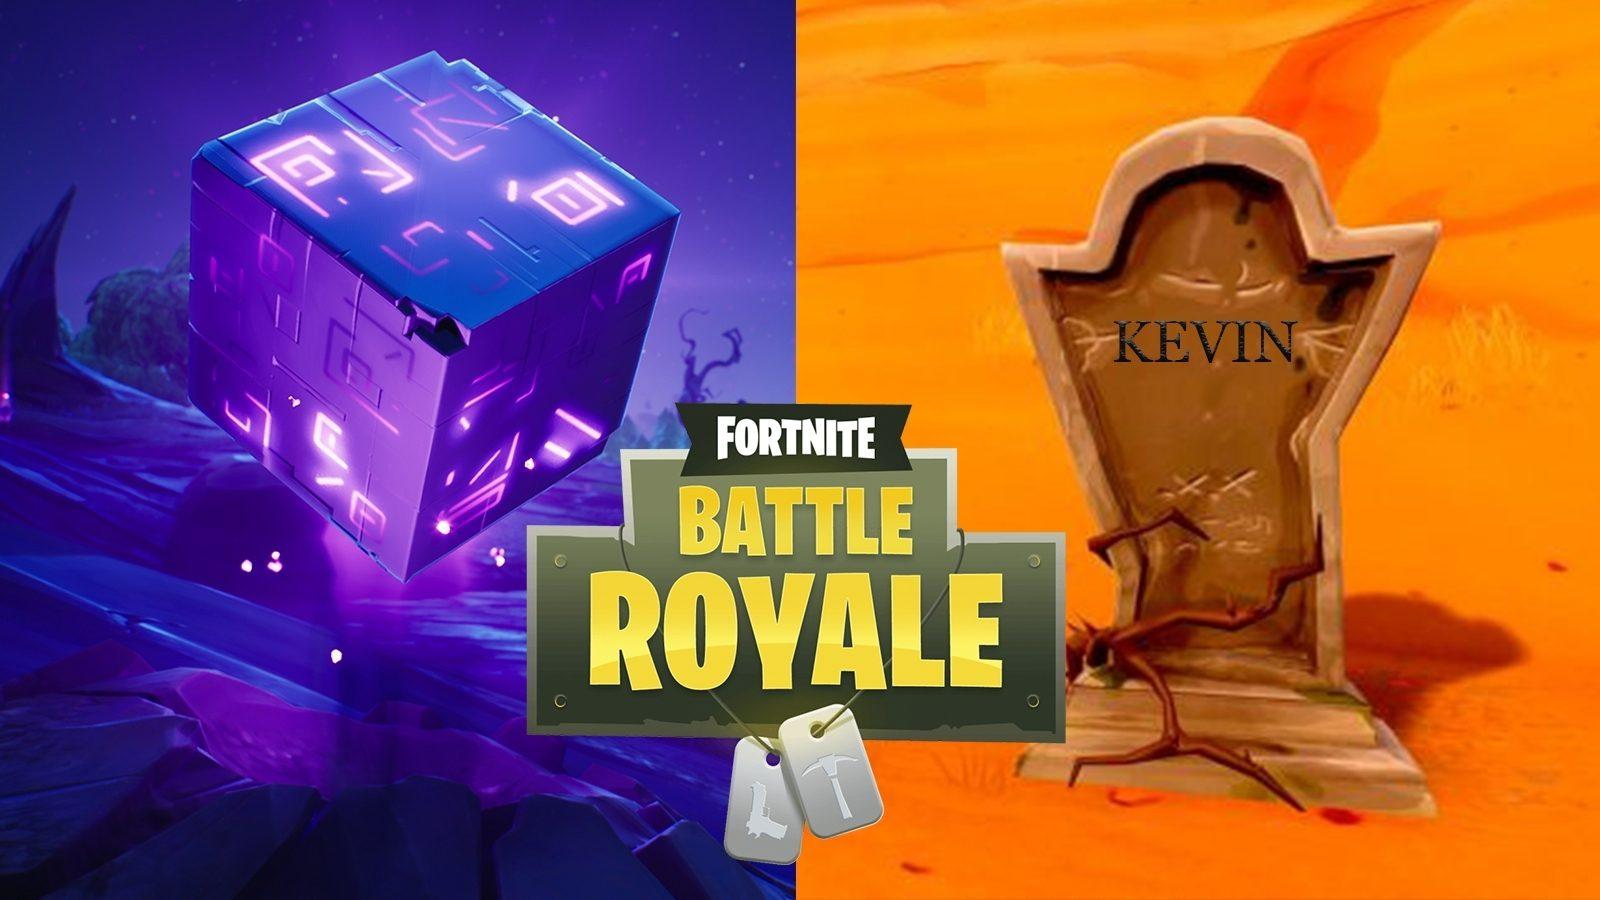 This Fortnite concept skin celebrates Kevin the Cube's final moments